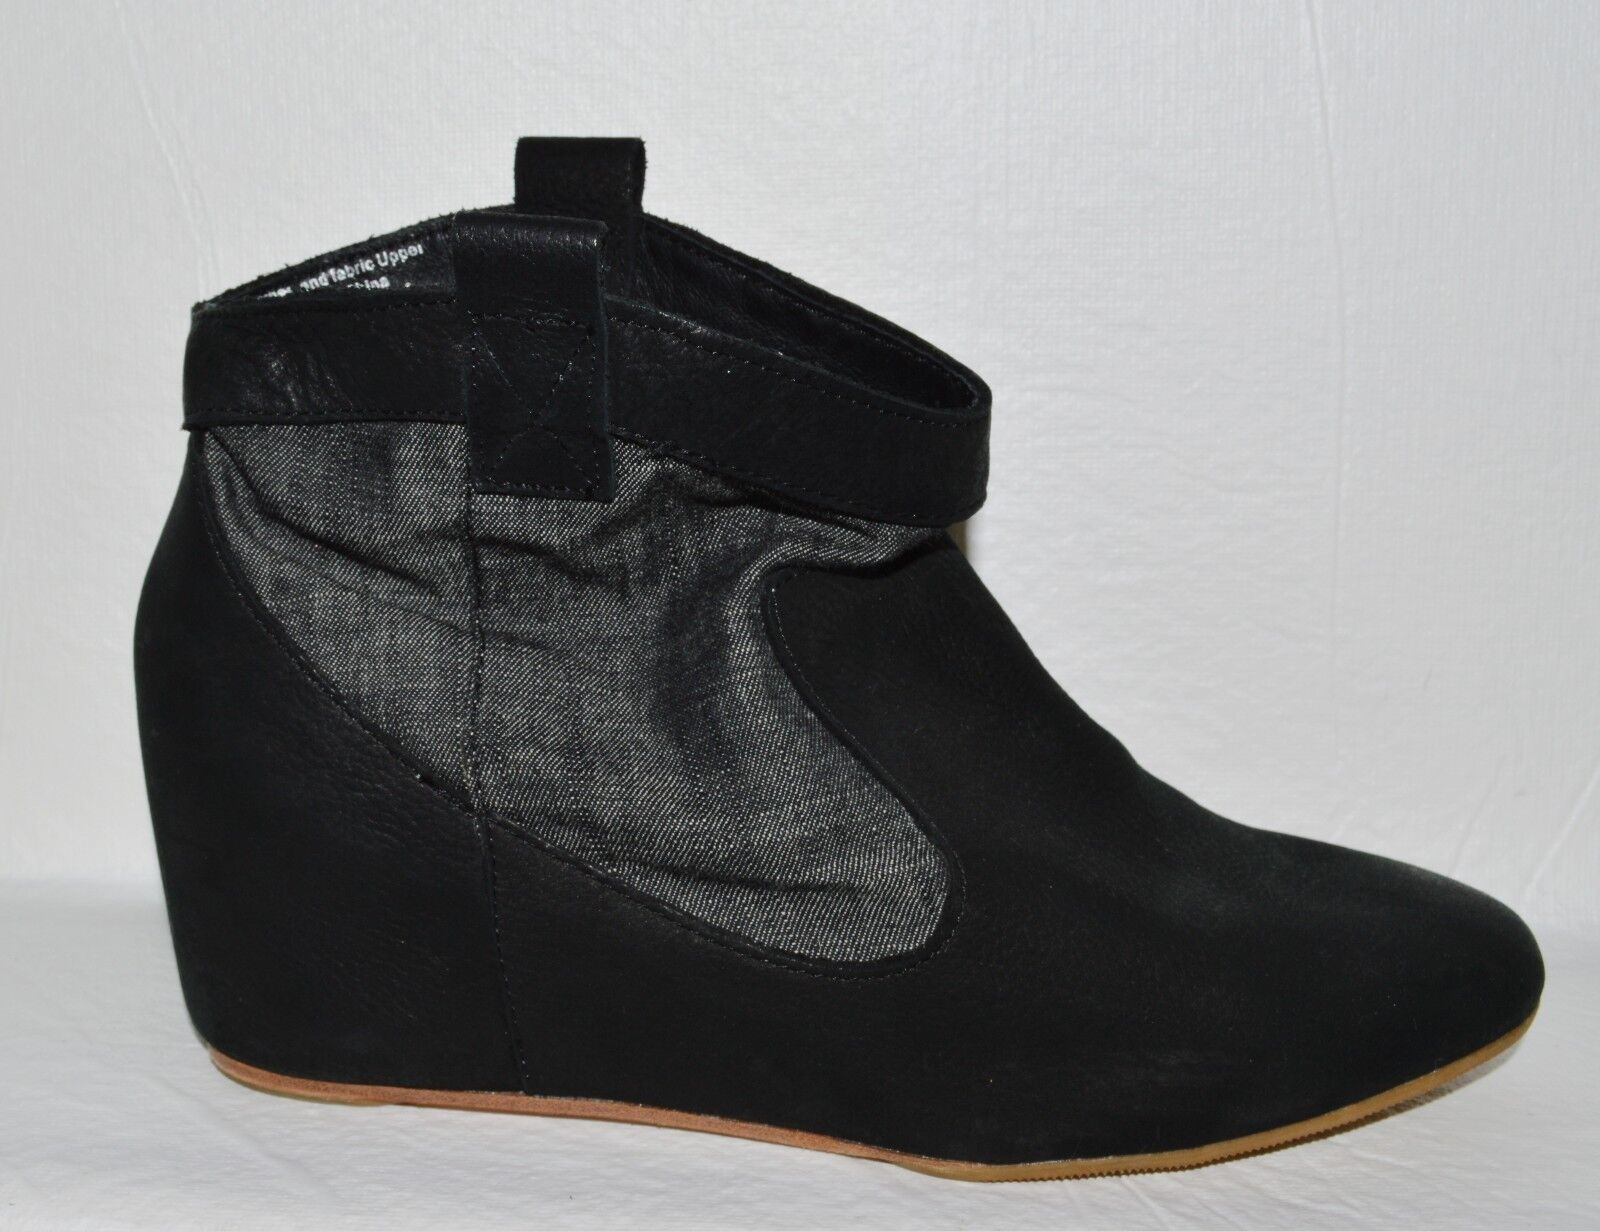 80  SZ 6 M BLACK LEATHER JEANS ANKLE BOOTS COVERED WEDGE HEEL BOOTIES